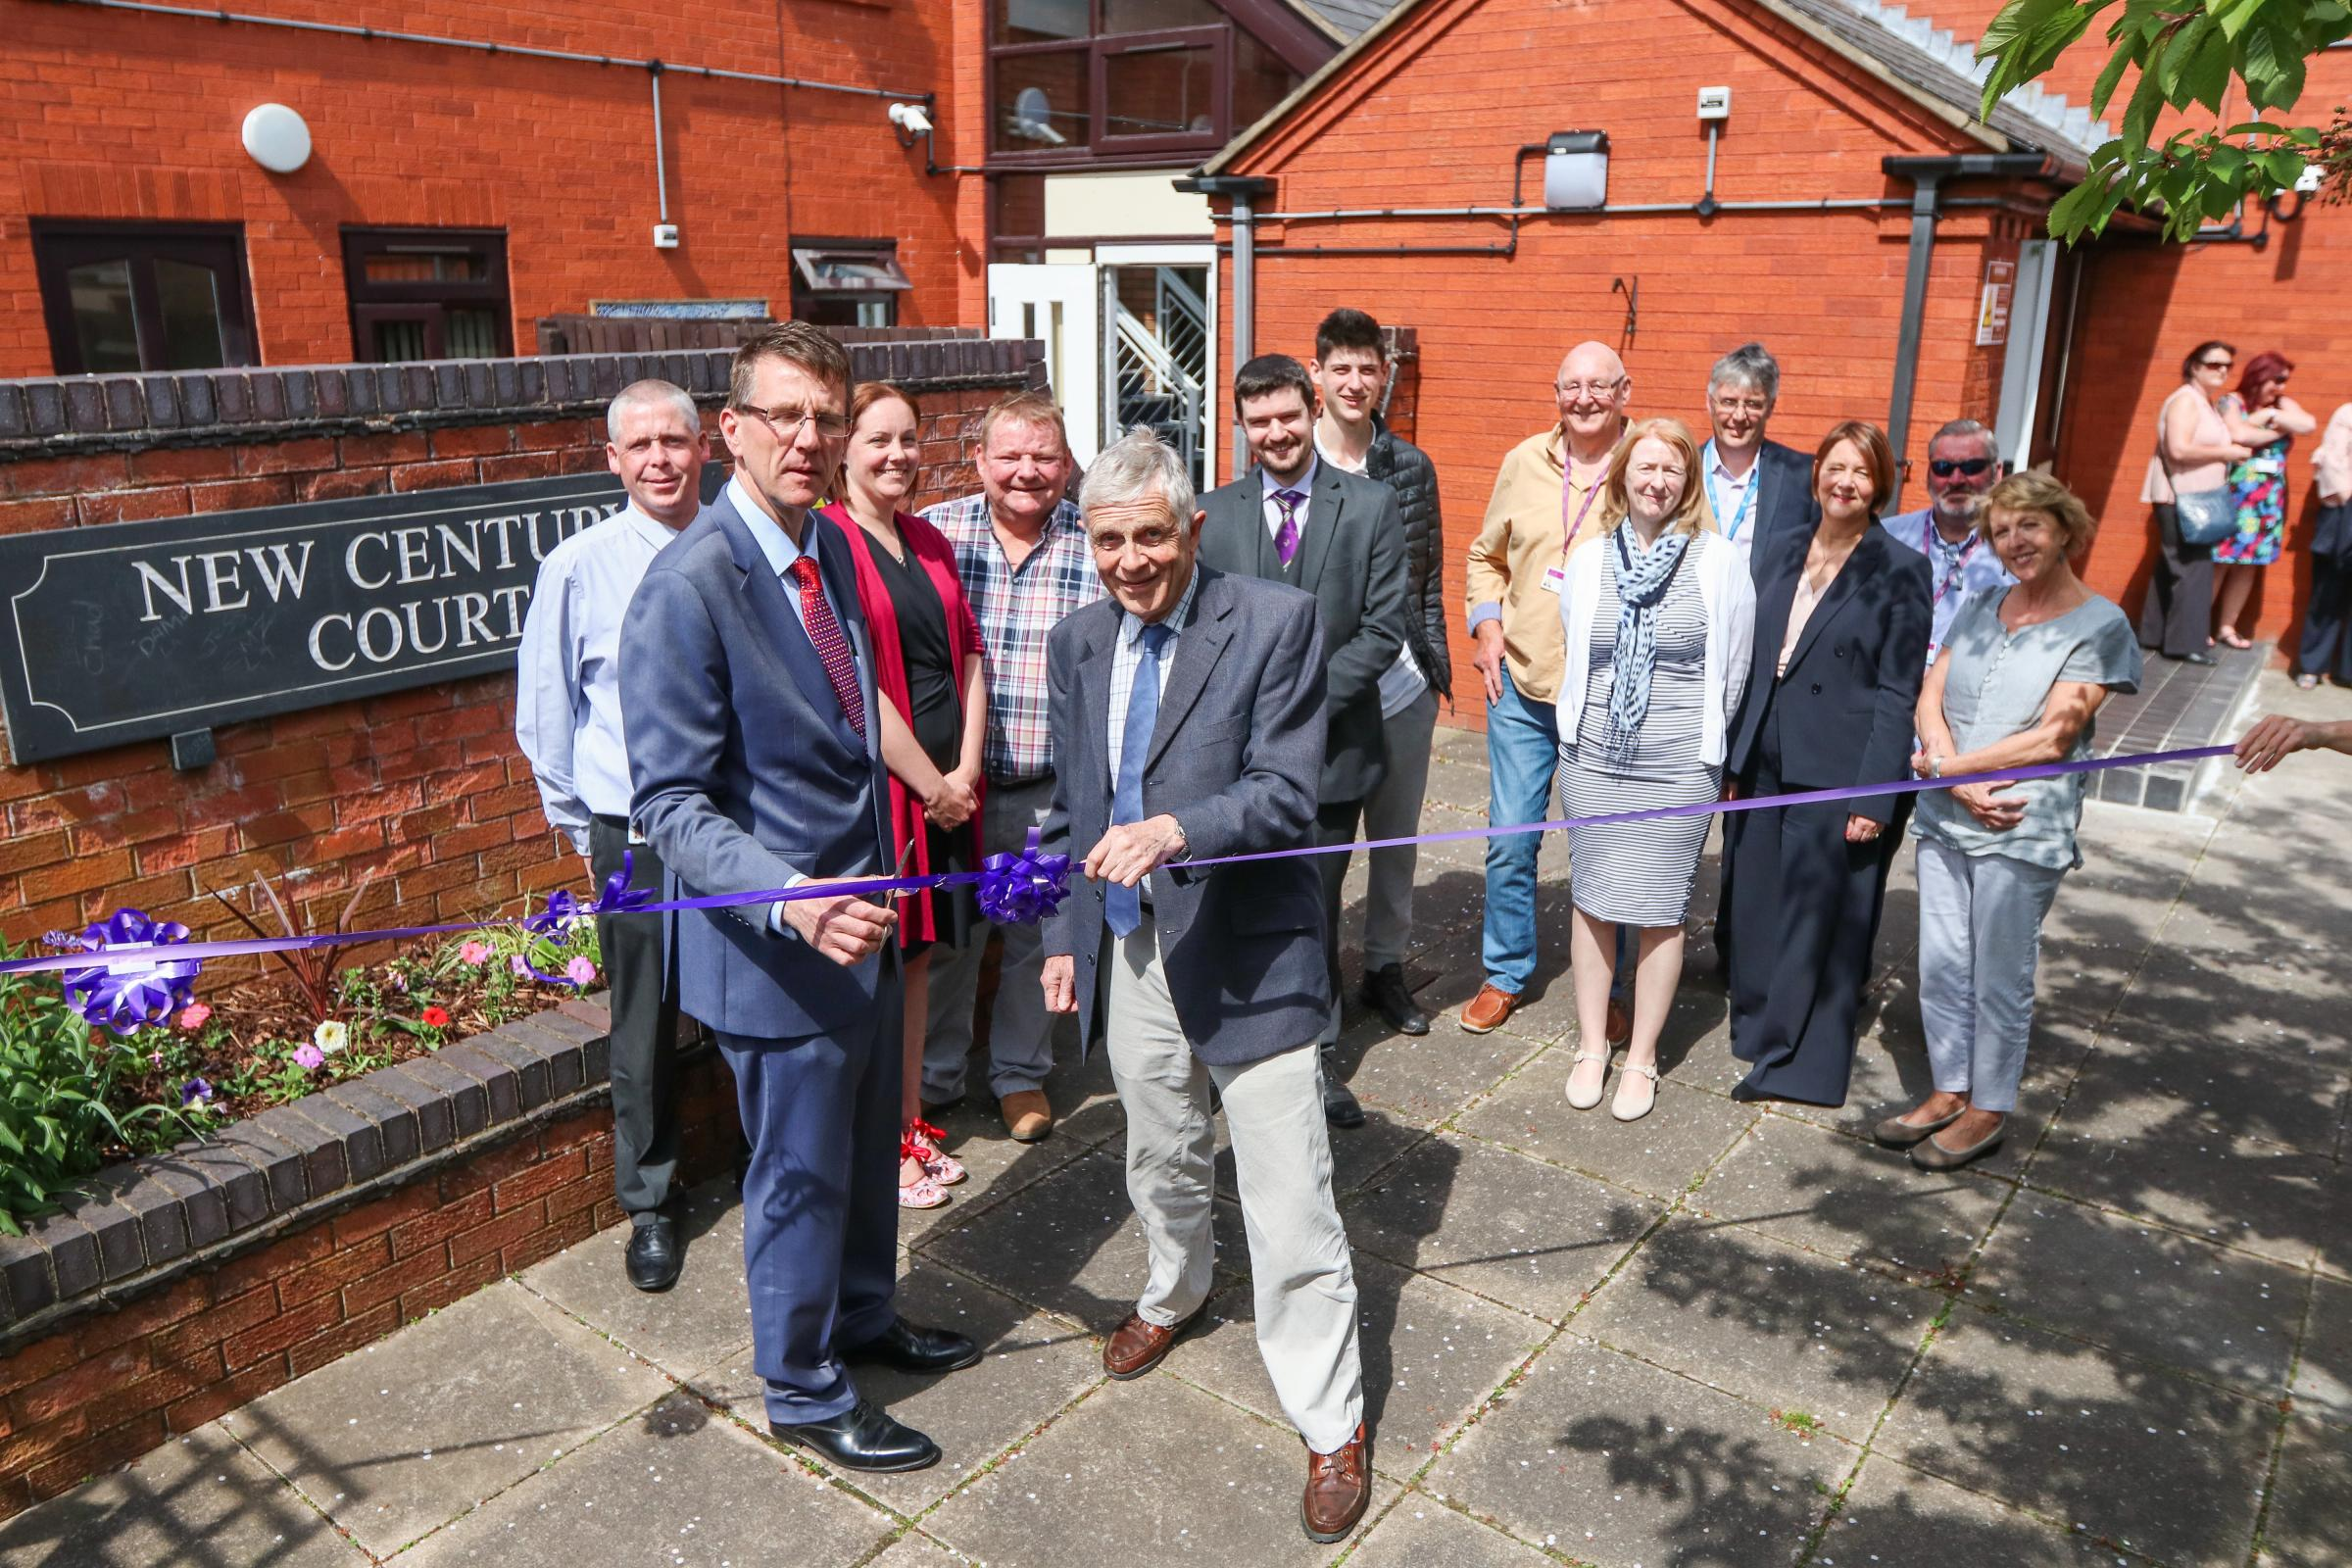 Lee Chapman ( cabinet member for housing), Nick Bardsley (cabinet member for childrens services cut the ribbon...Official opening of New Century Court, Oswestry..New Century Court provides accommodation with support for young people aged 16-25. The proper